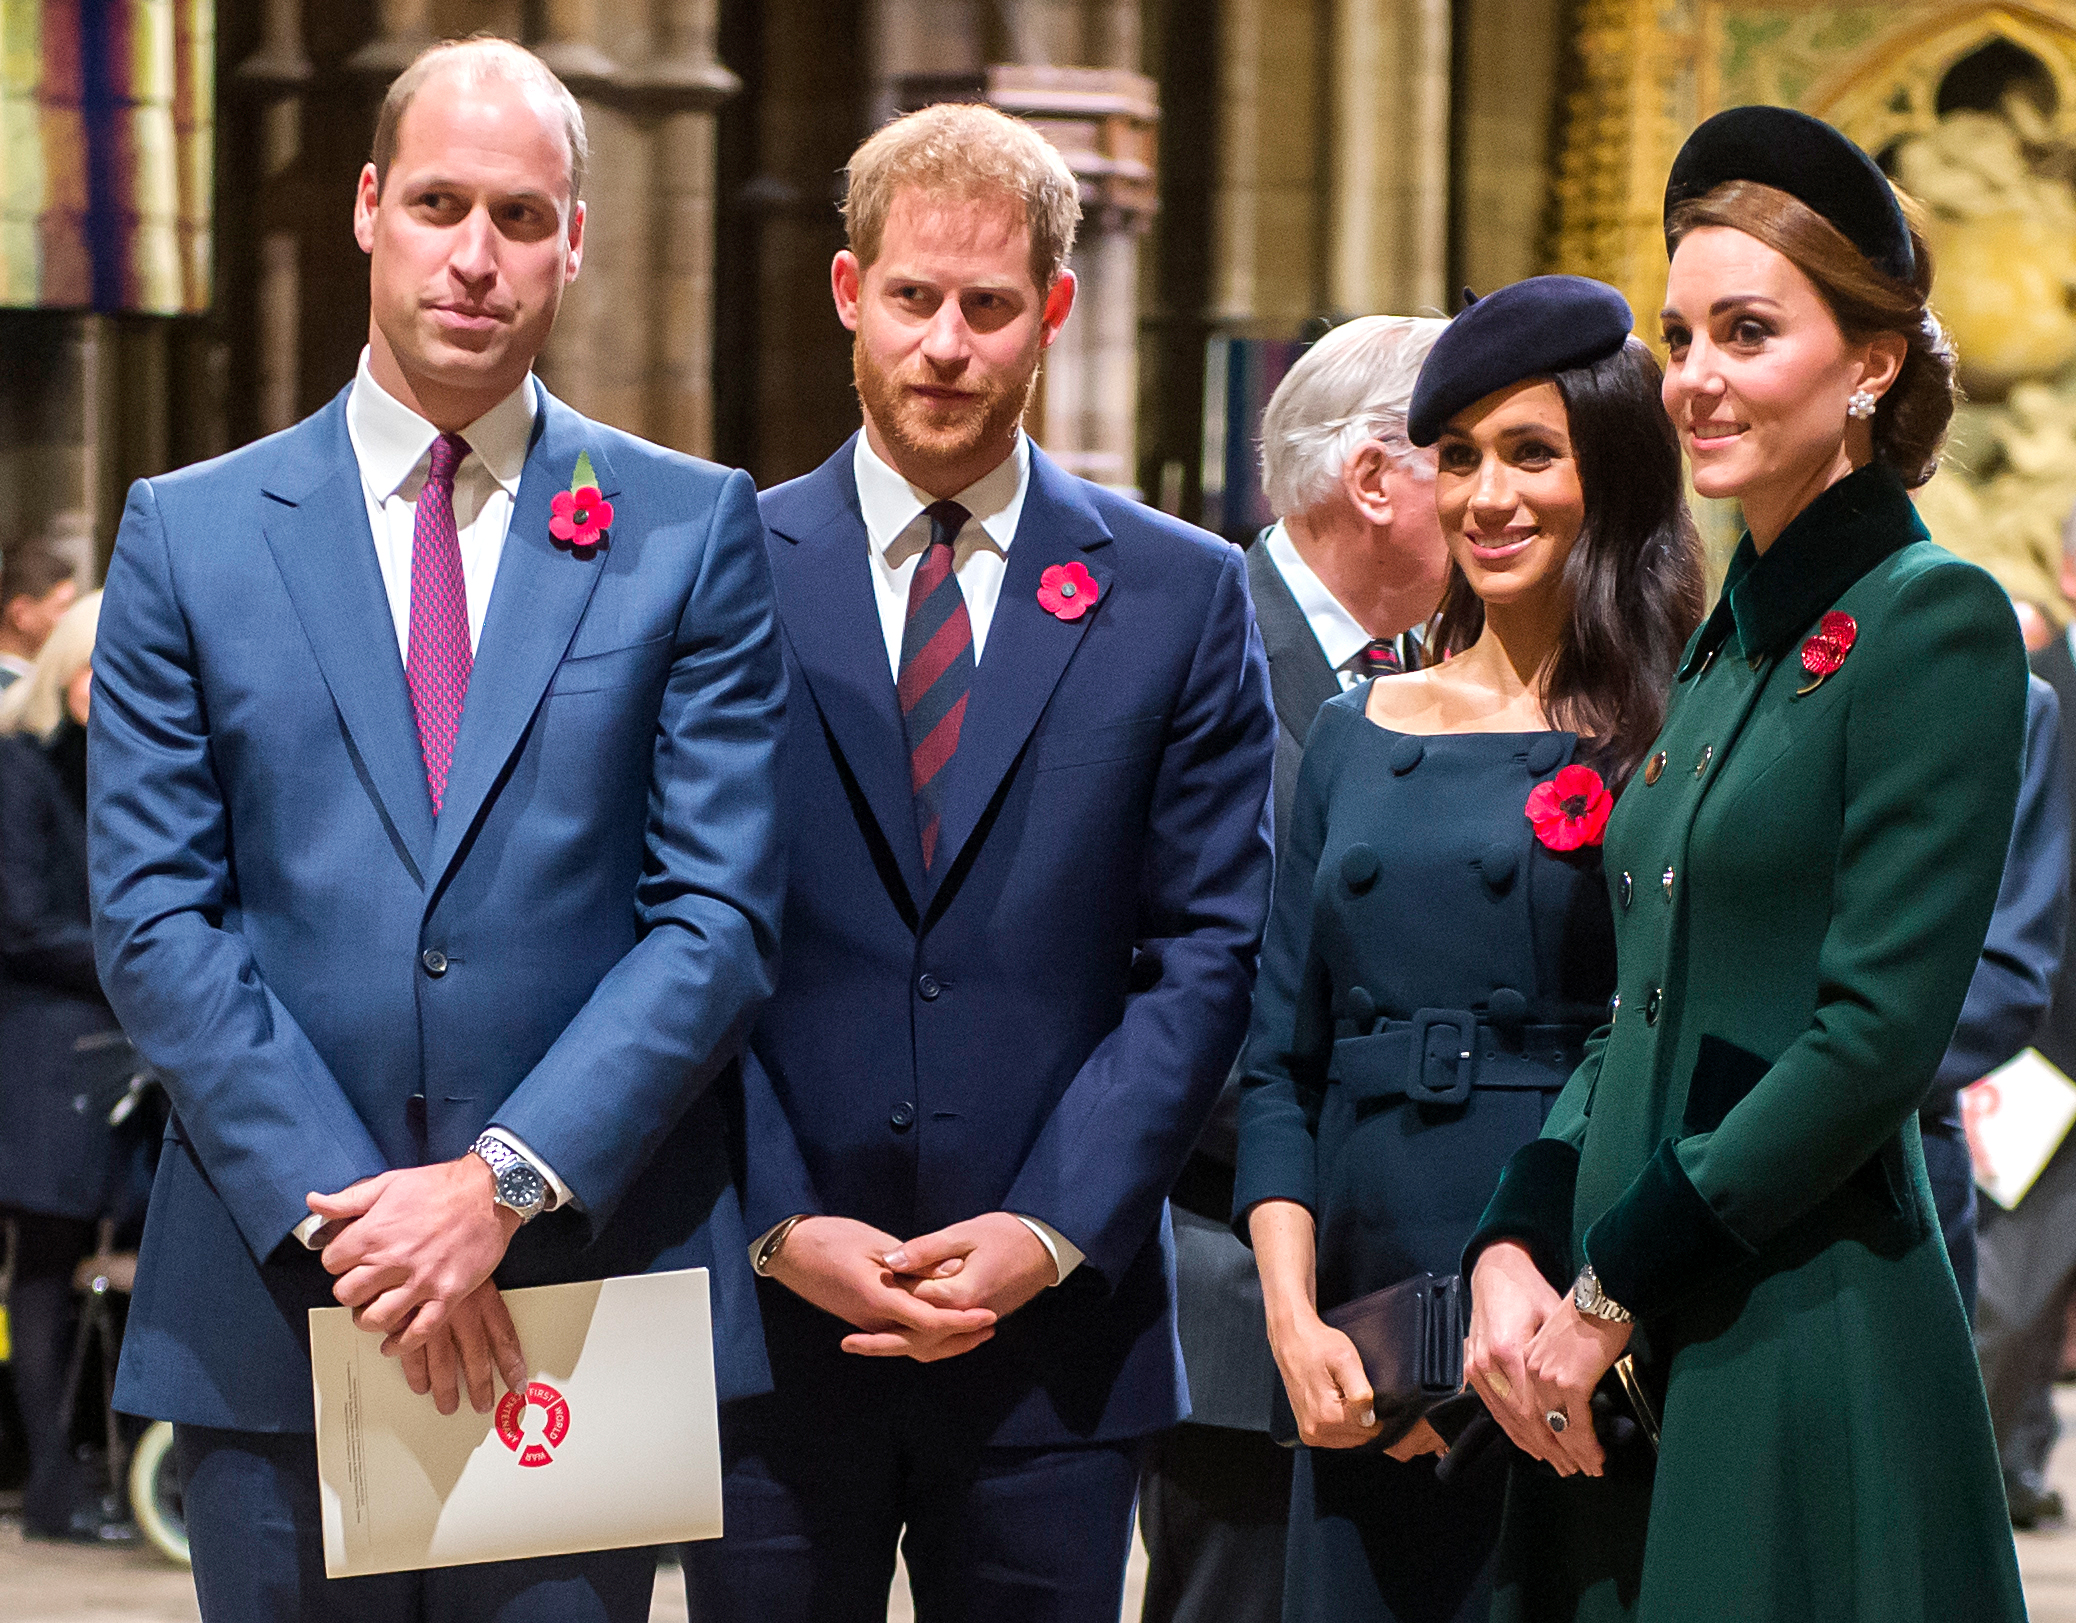 Prince Harry Duchess Meghan New Foundation Details Revealed - Prince William, Prince Harry, Duchess Meghan and Duchess Kate at Westminster Abbey on November 11, 2018.